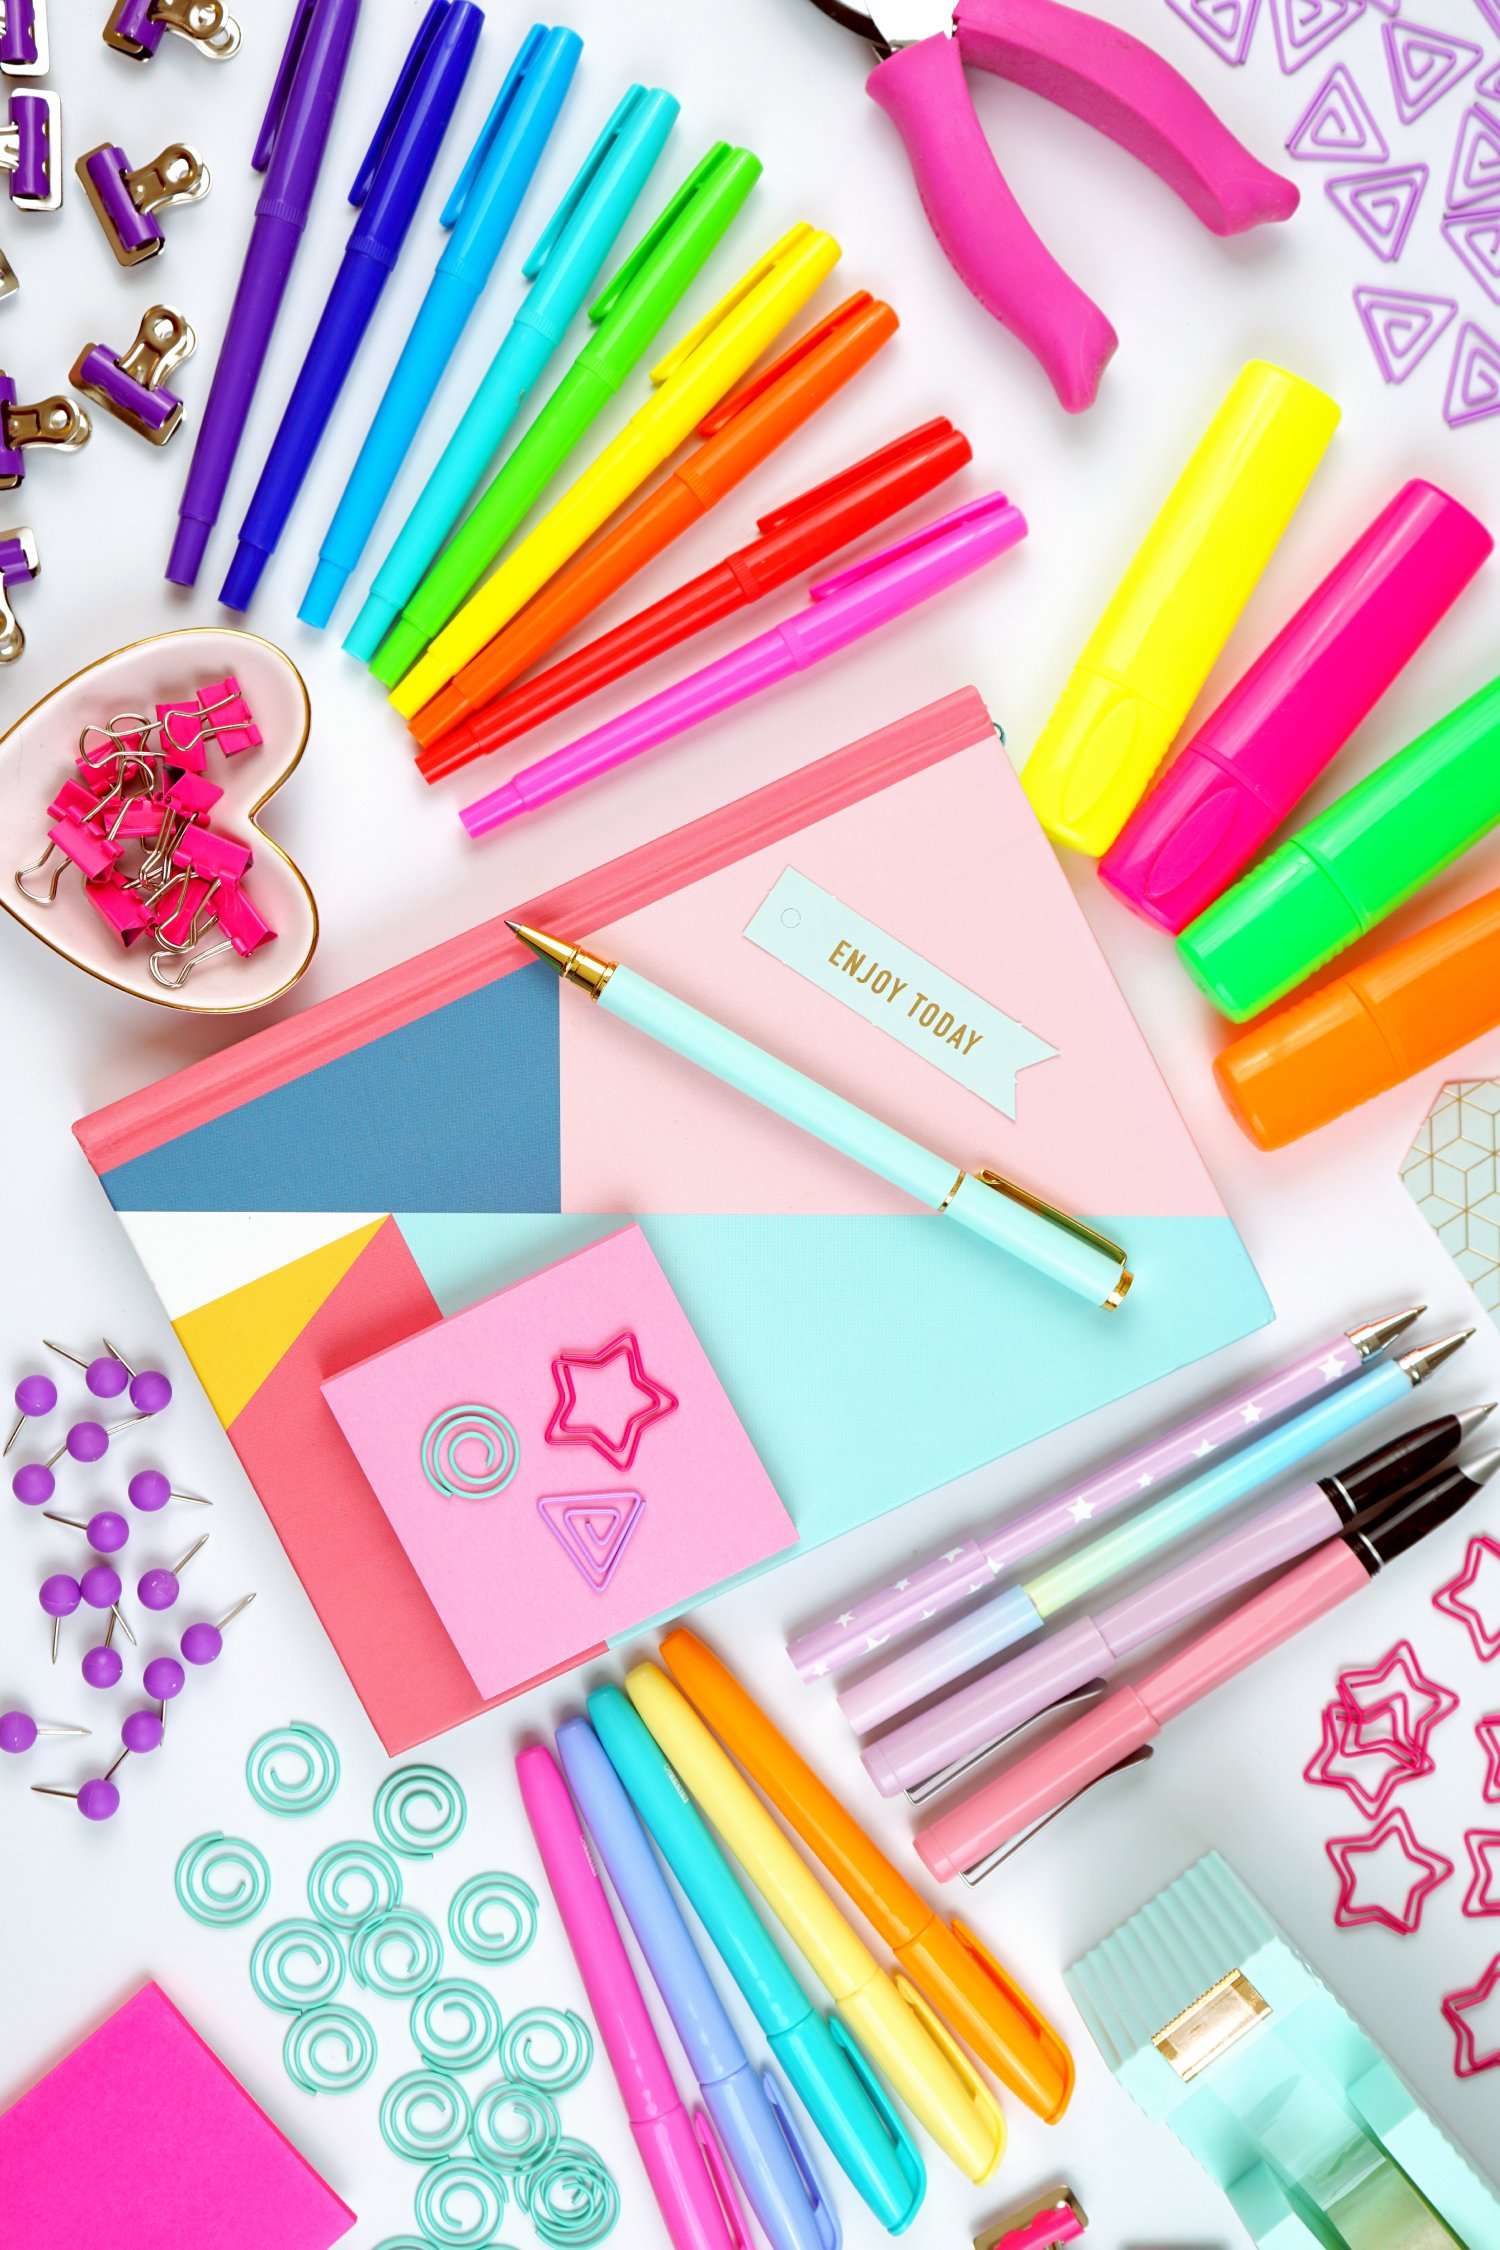 Decorative image of craft supplies